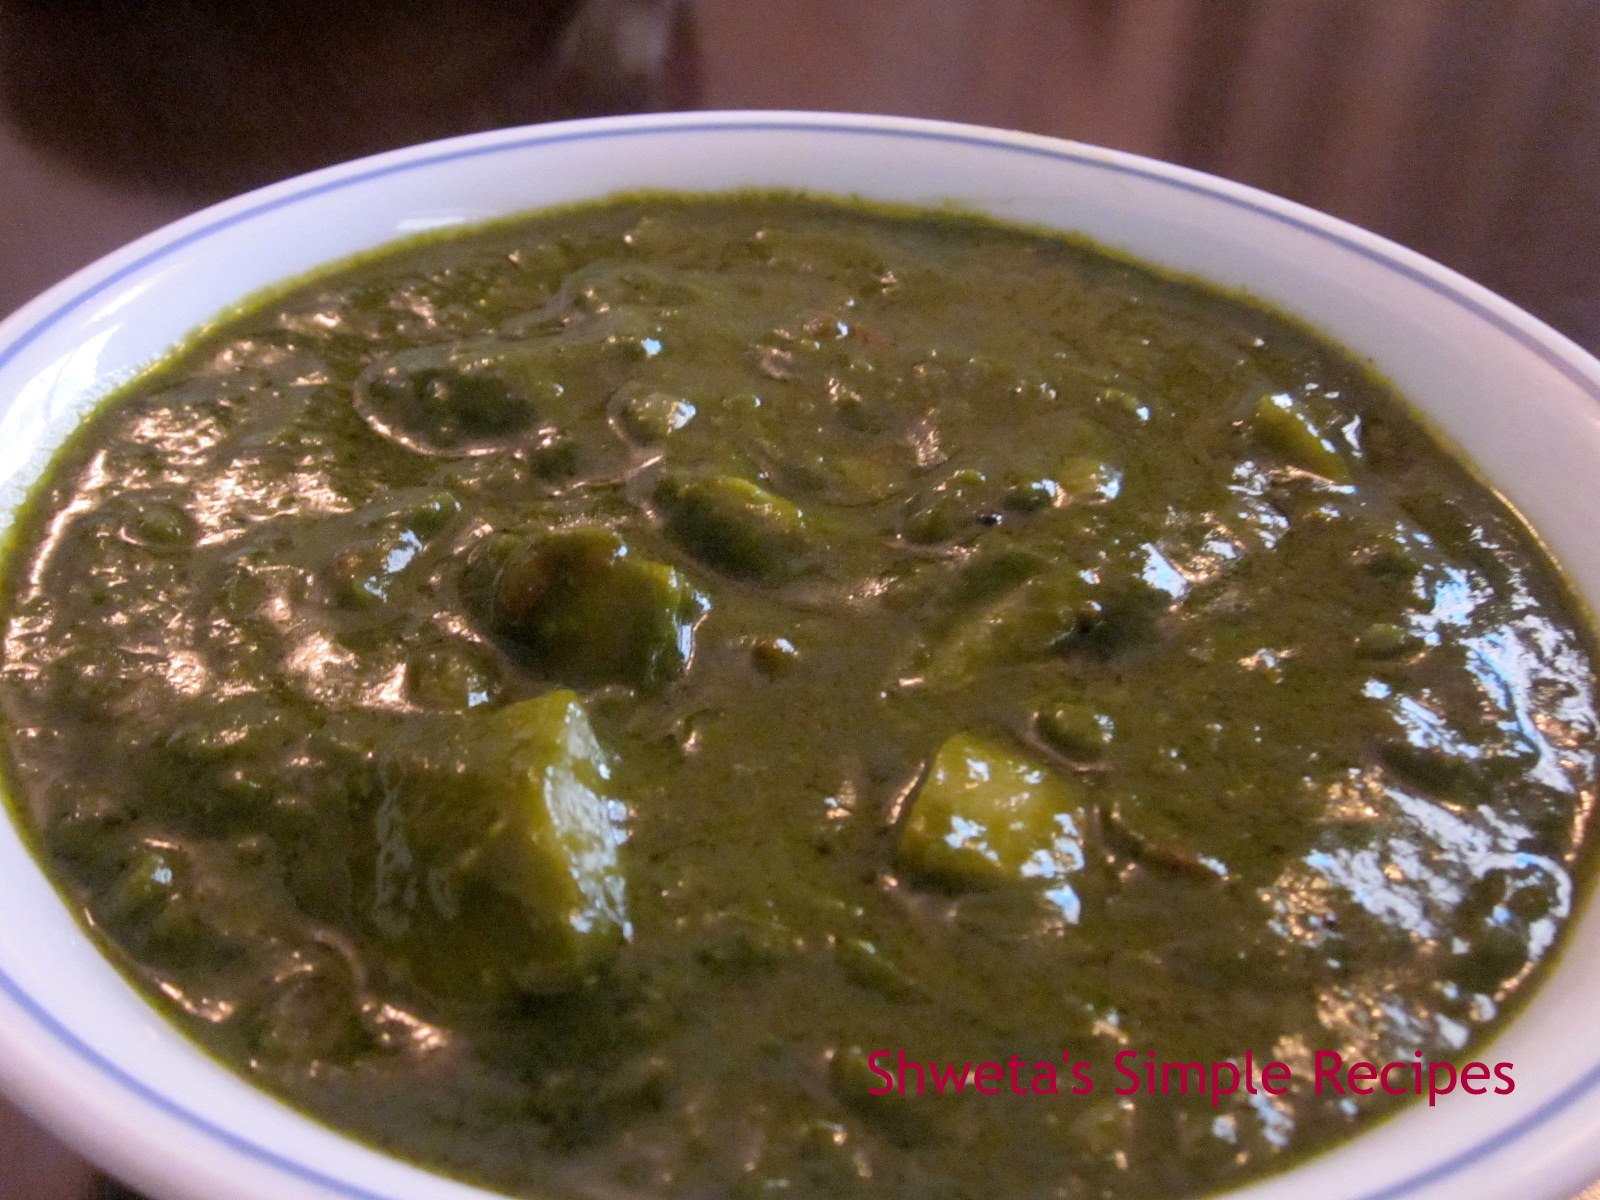 Shweta's Simple Recipes: Aloo Palak /Potato spinach Gravy